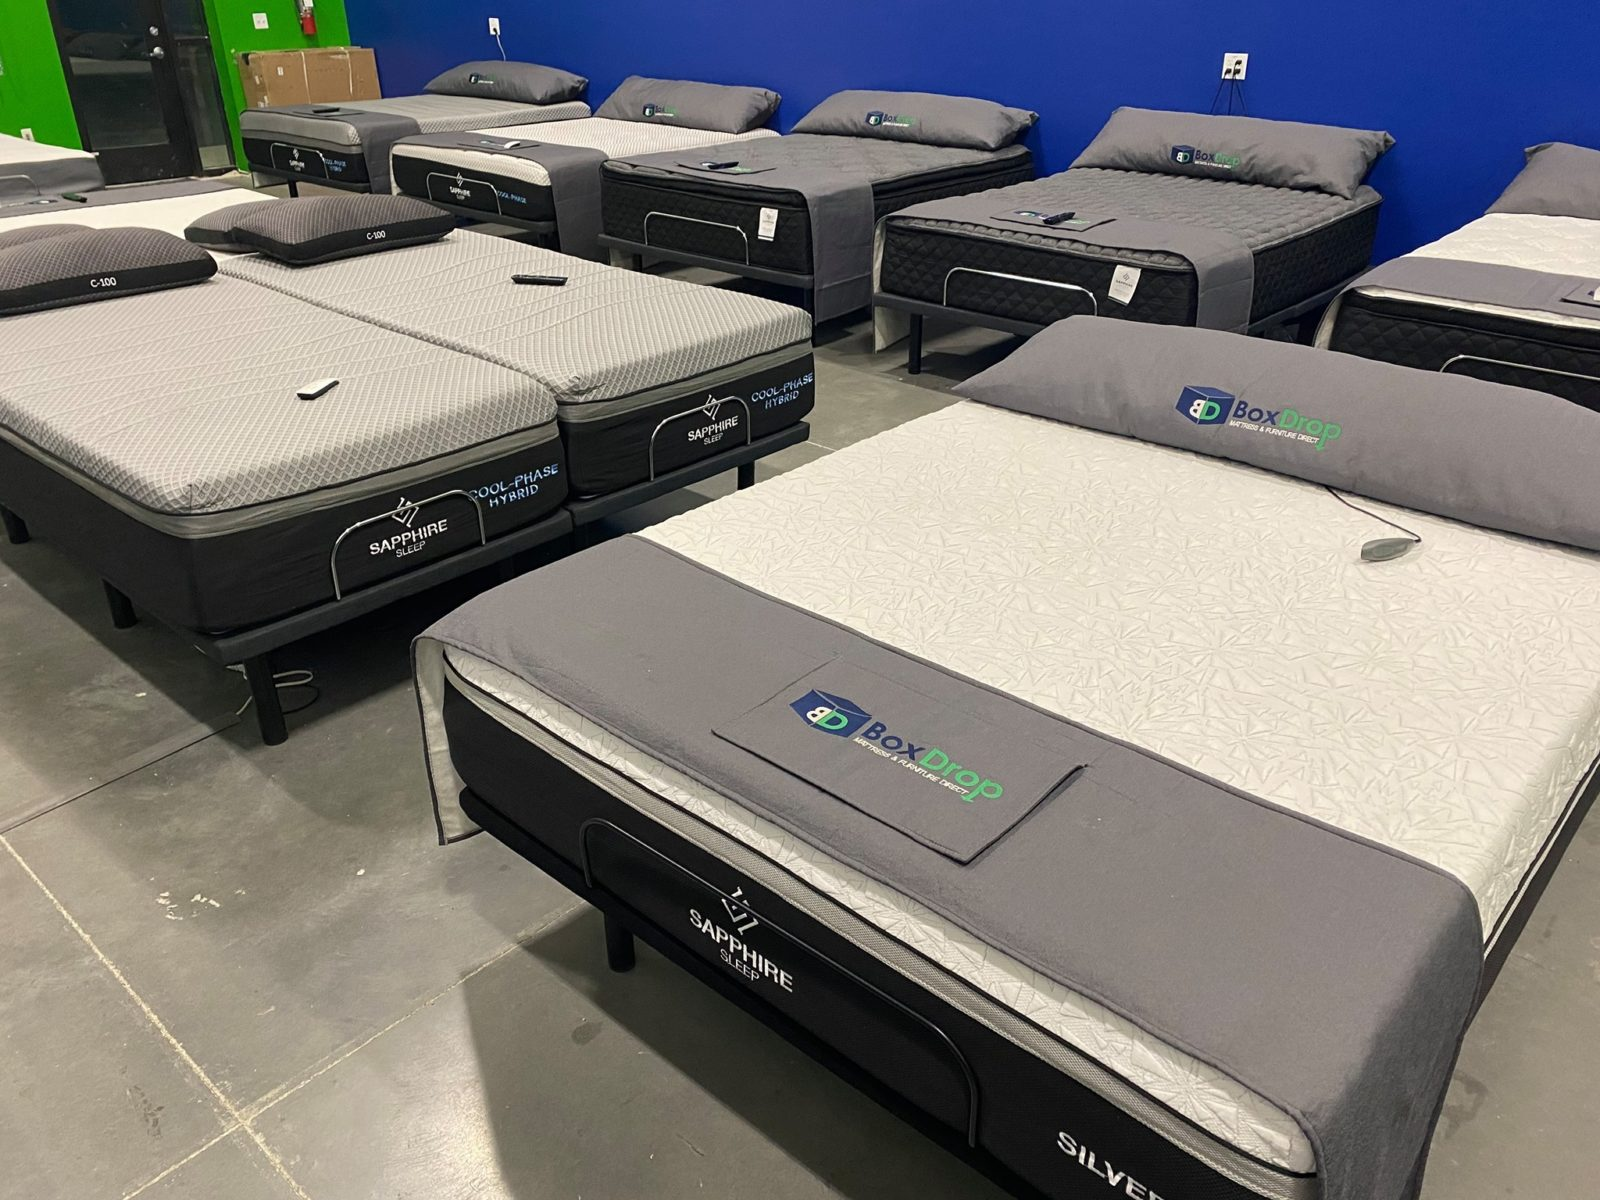 Queen Mattress Clearance Center and Adjustable bases